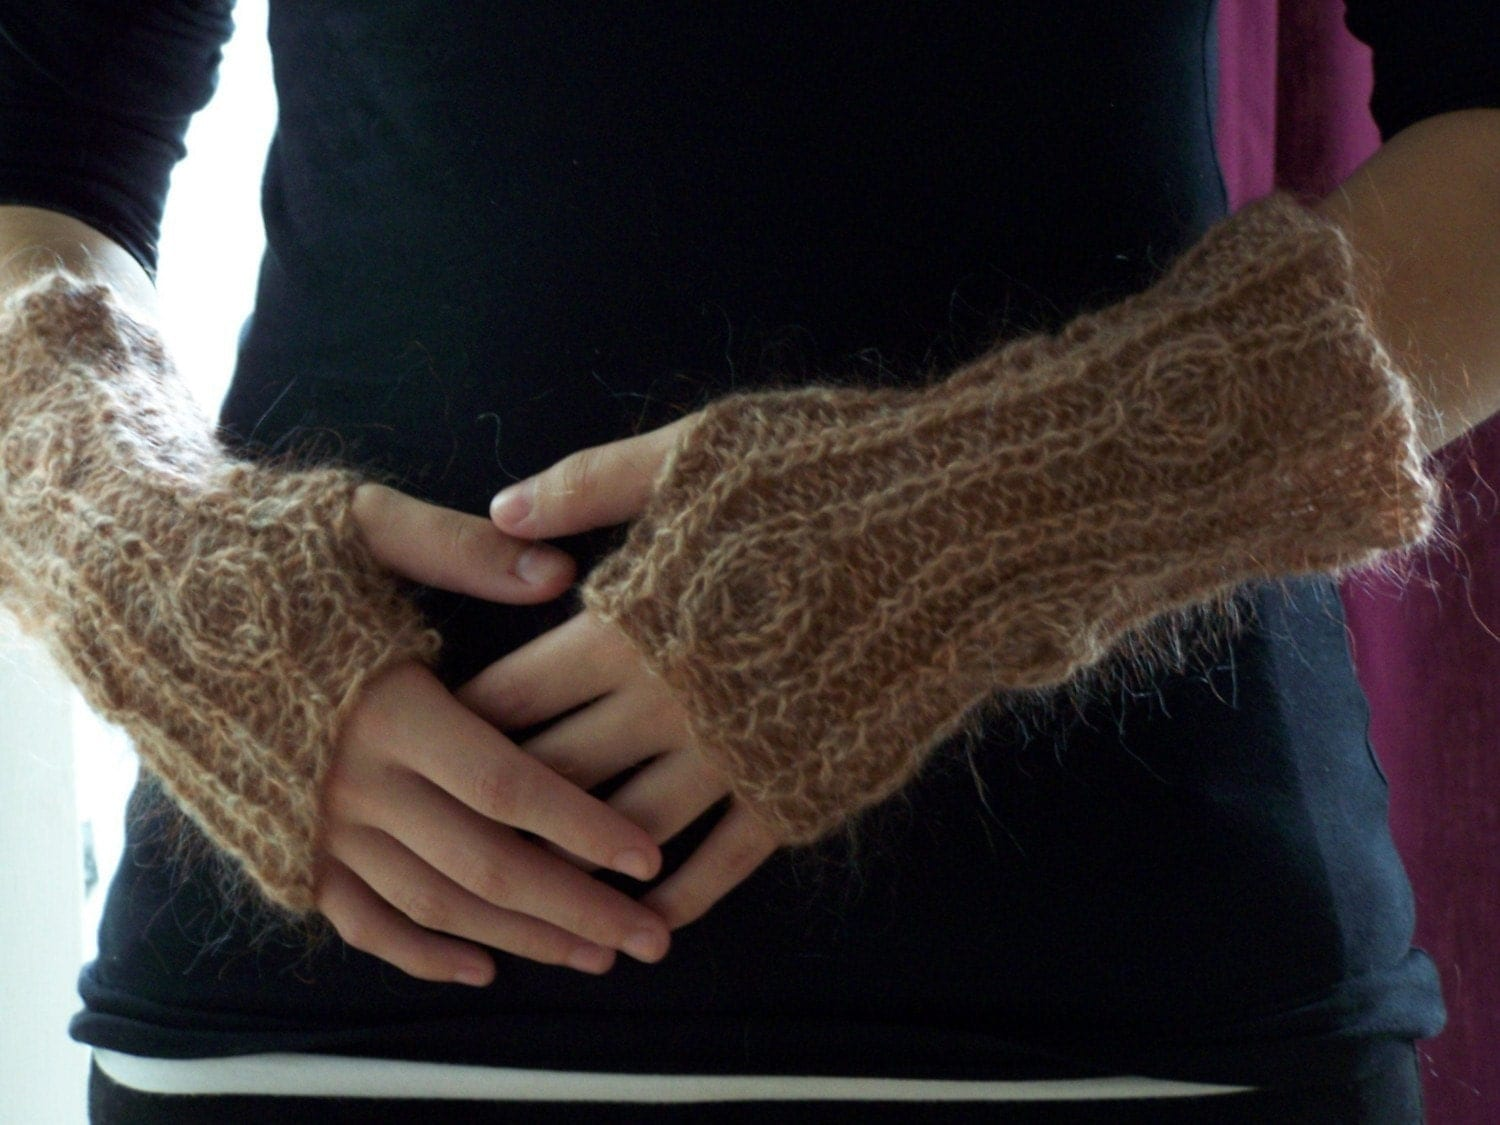 Knit Fingerless Gloves Pattern Straight Needles : Beaute PDF Knitting Pattern Fingerless Gloves by KnitChicGrace